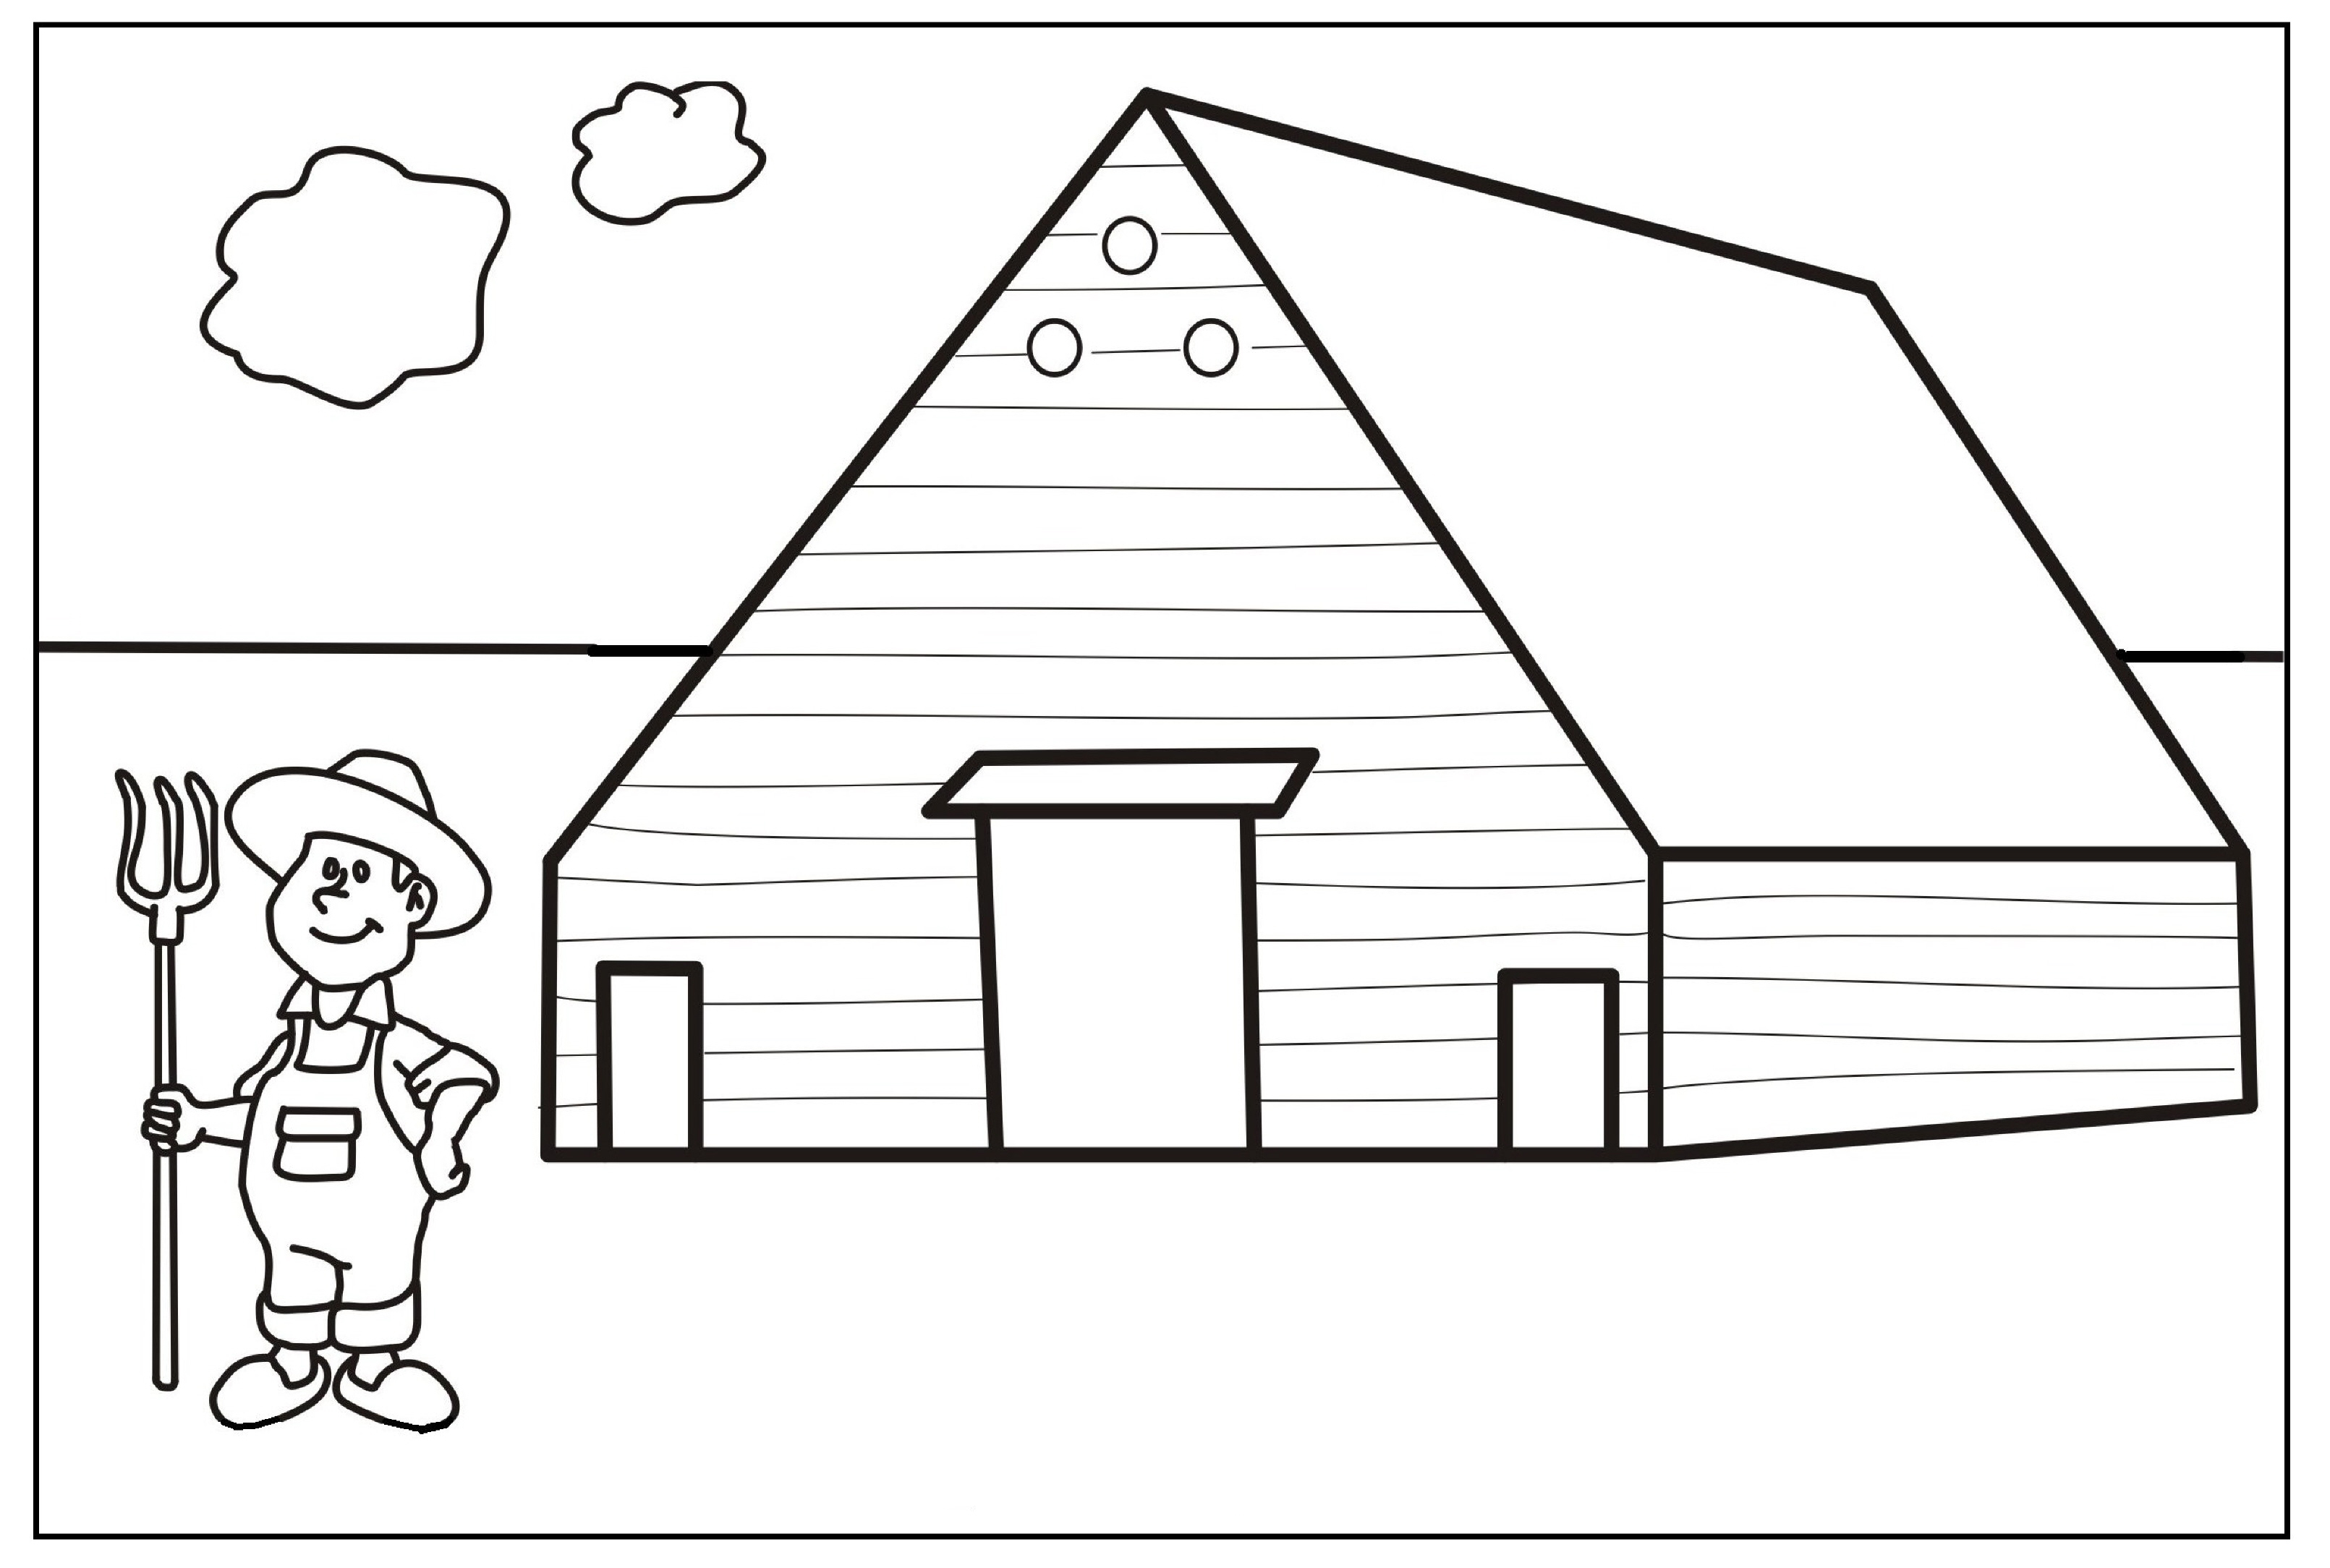 This Is Farm Animal Color Pages Coloring For Kids Sketch Coloring Page